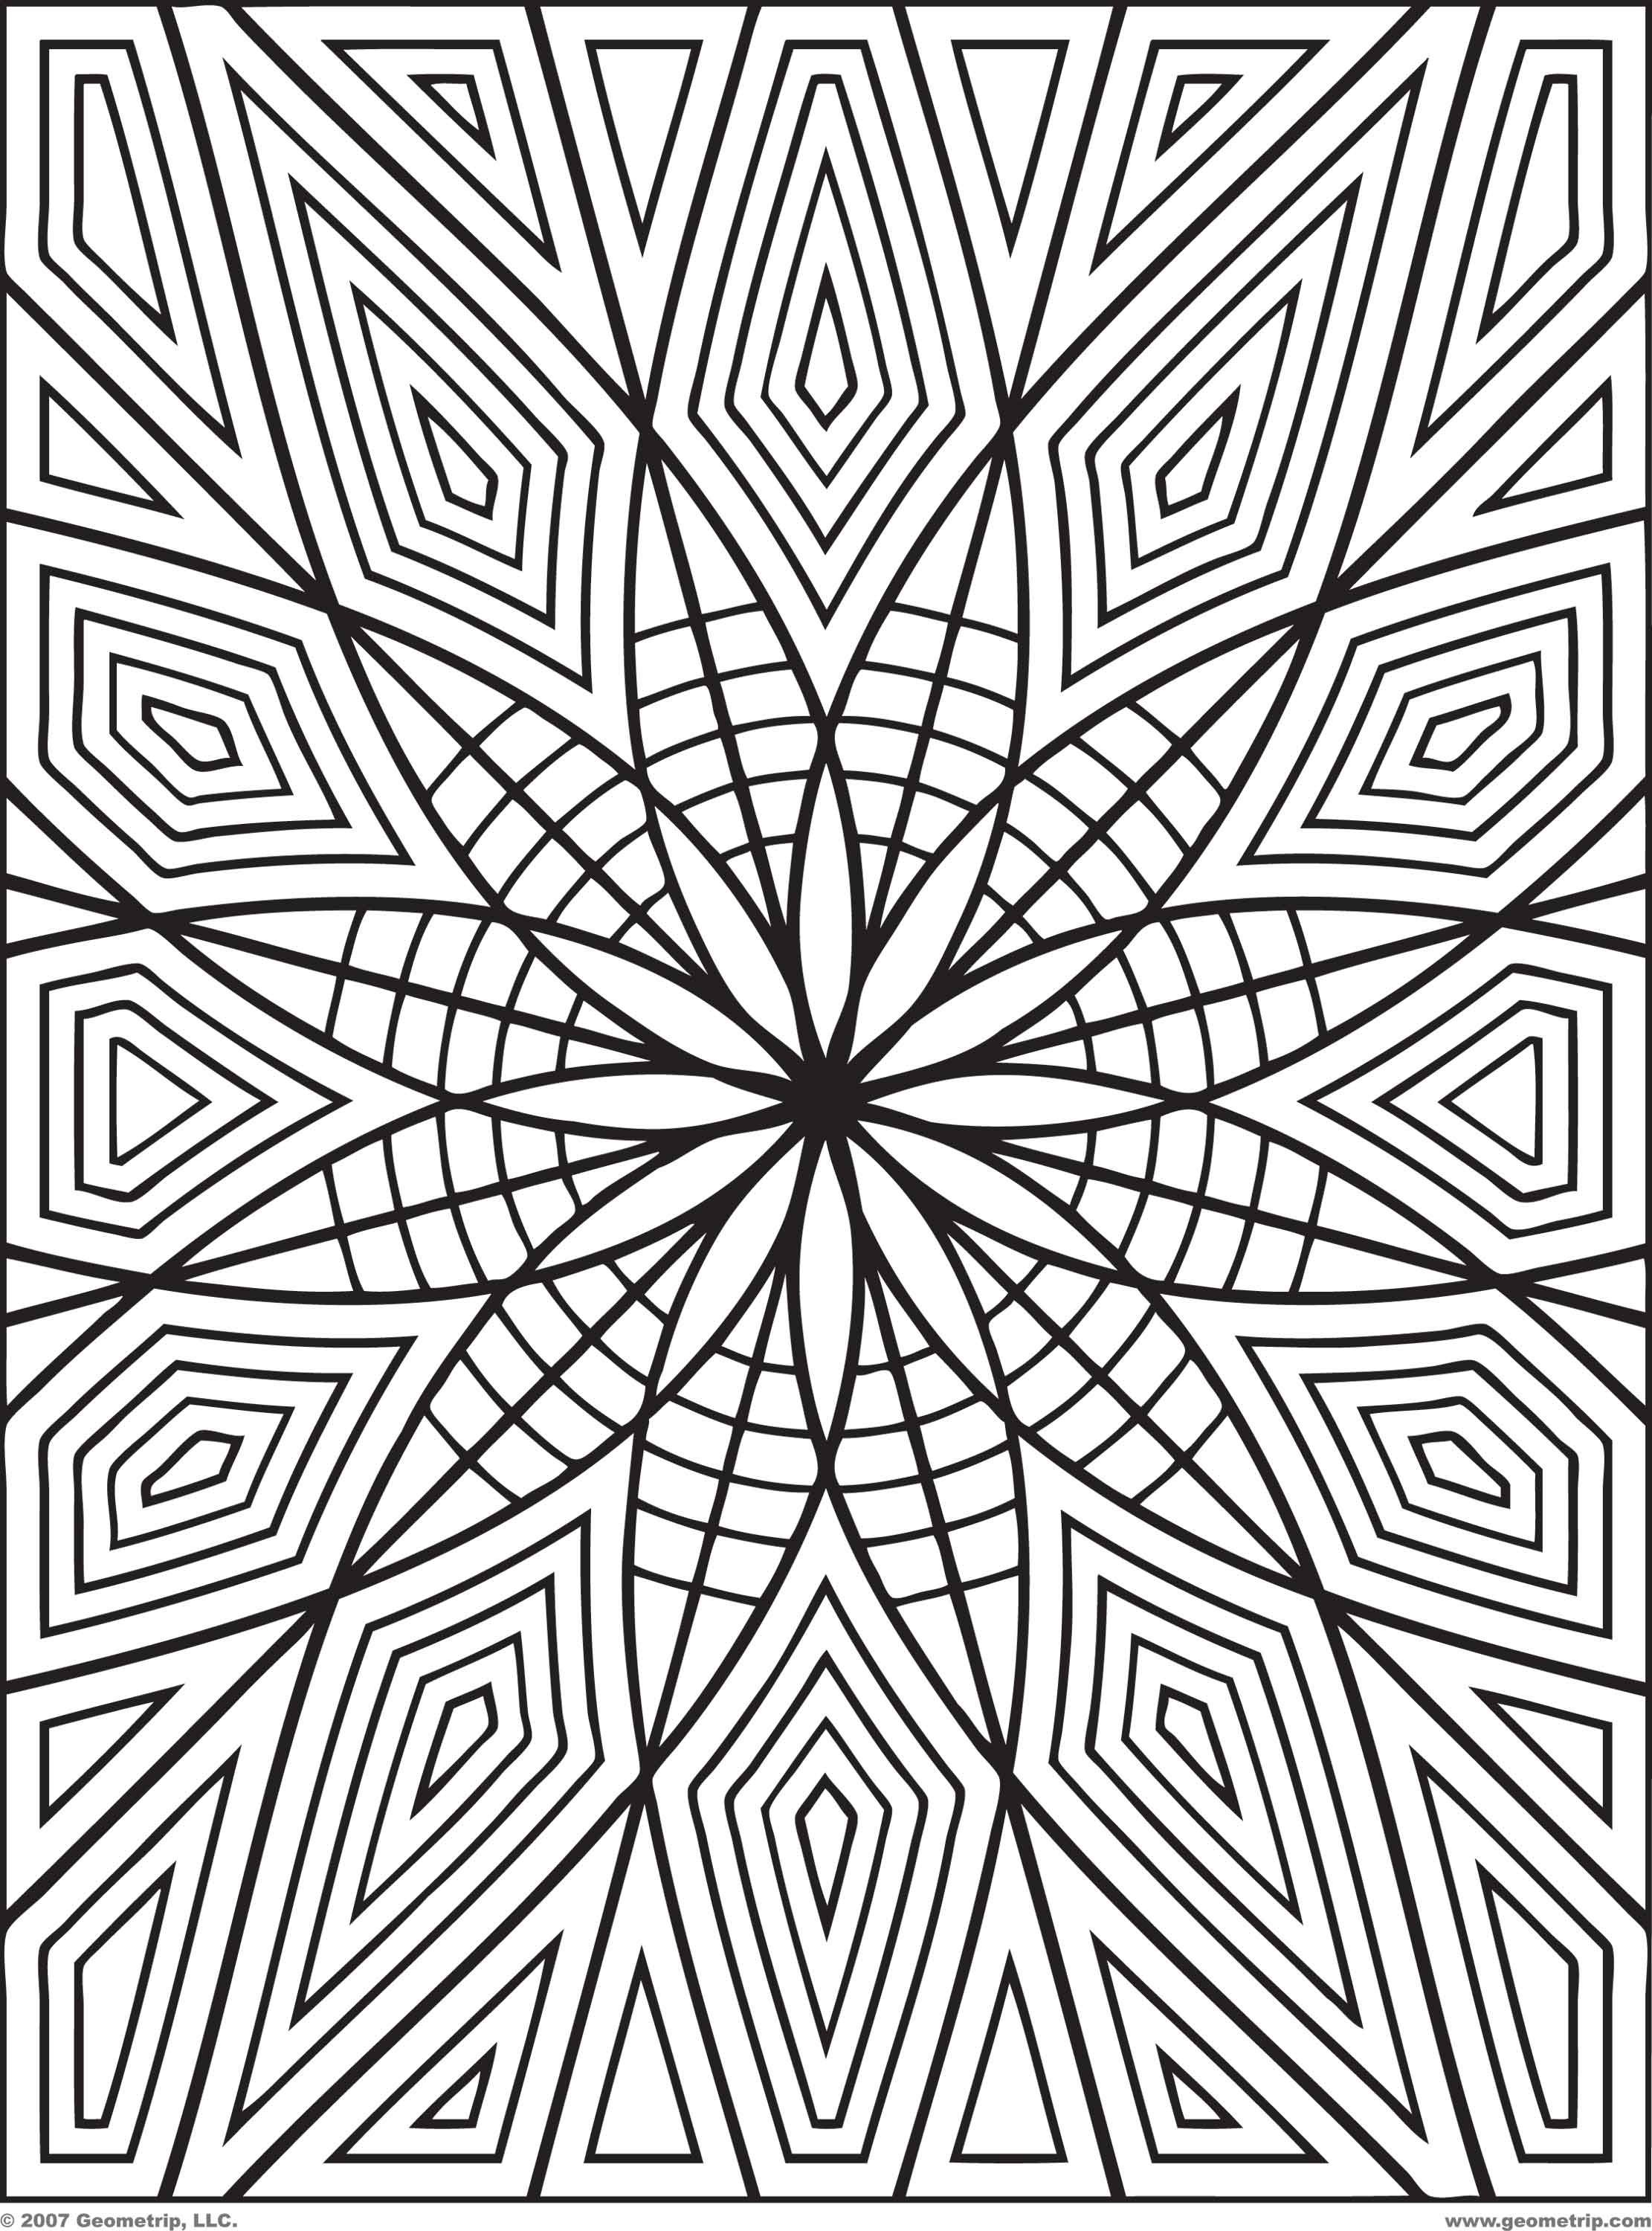 Free Printable Geometric Design Coloring Pages - Coloring Home